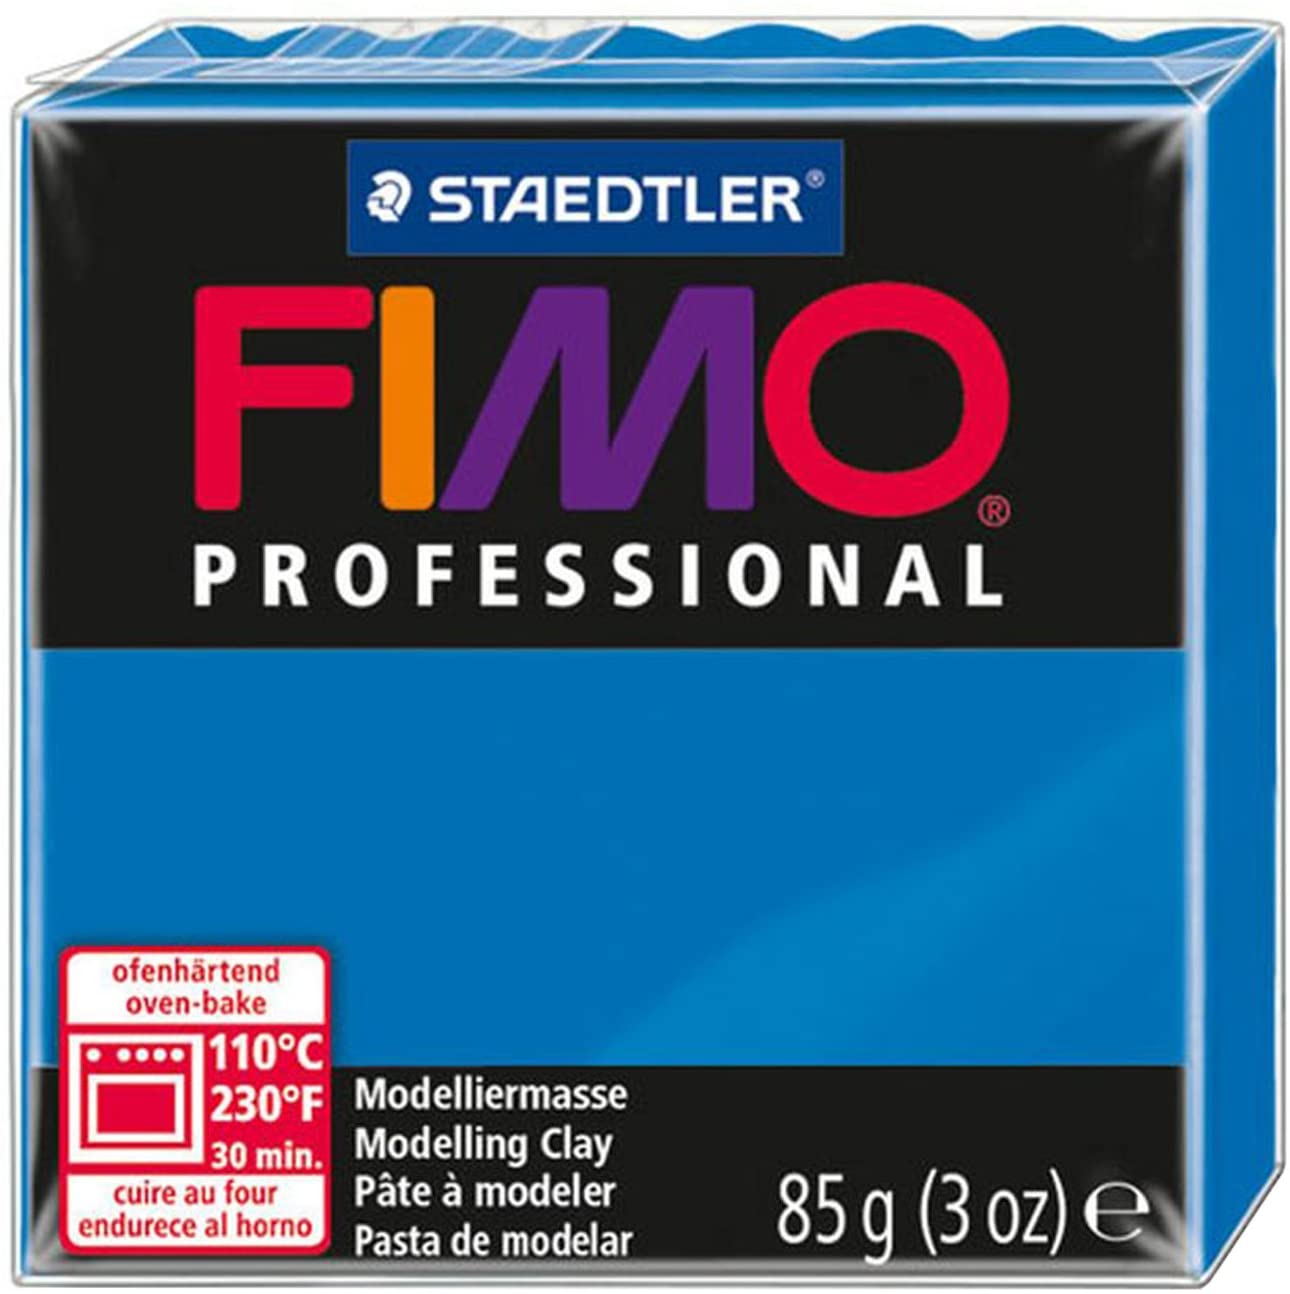 Staedtler Fimo Professional Soft Polymer Clay, 3-Ounce, True Blue